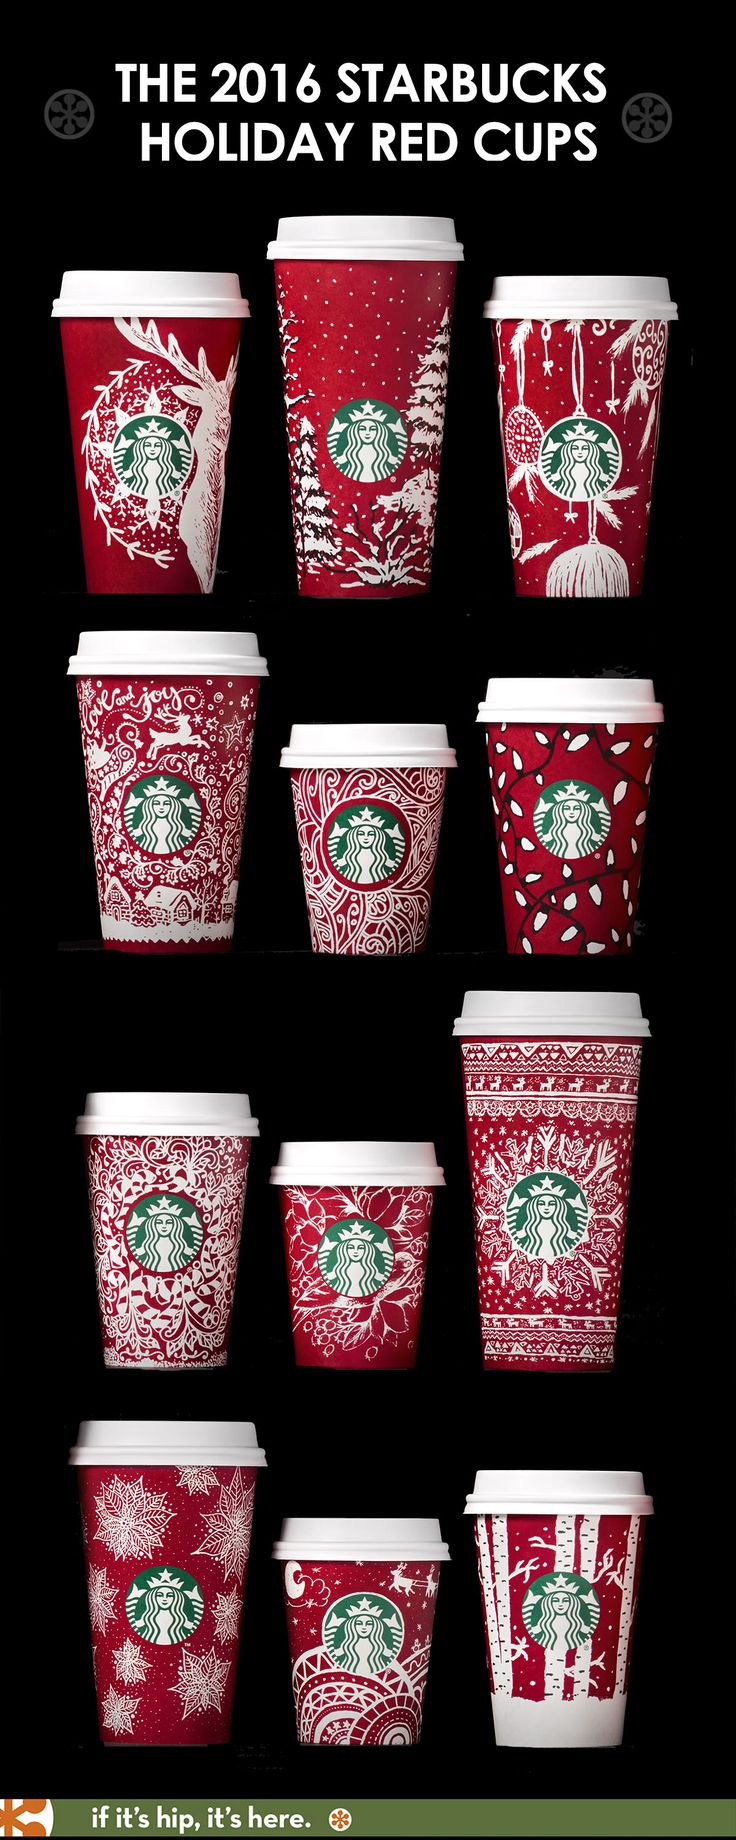 Get a closeup look at each of the new 2016 Starbucks Holiday Red Cups and learn the designer's inspiration at the link.